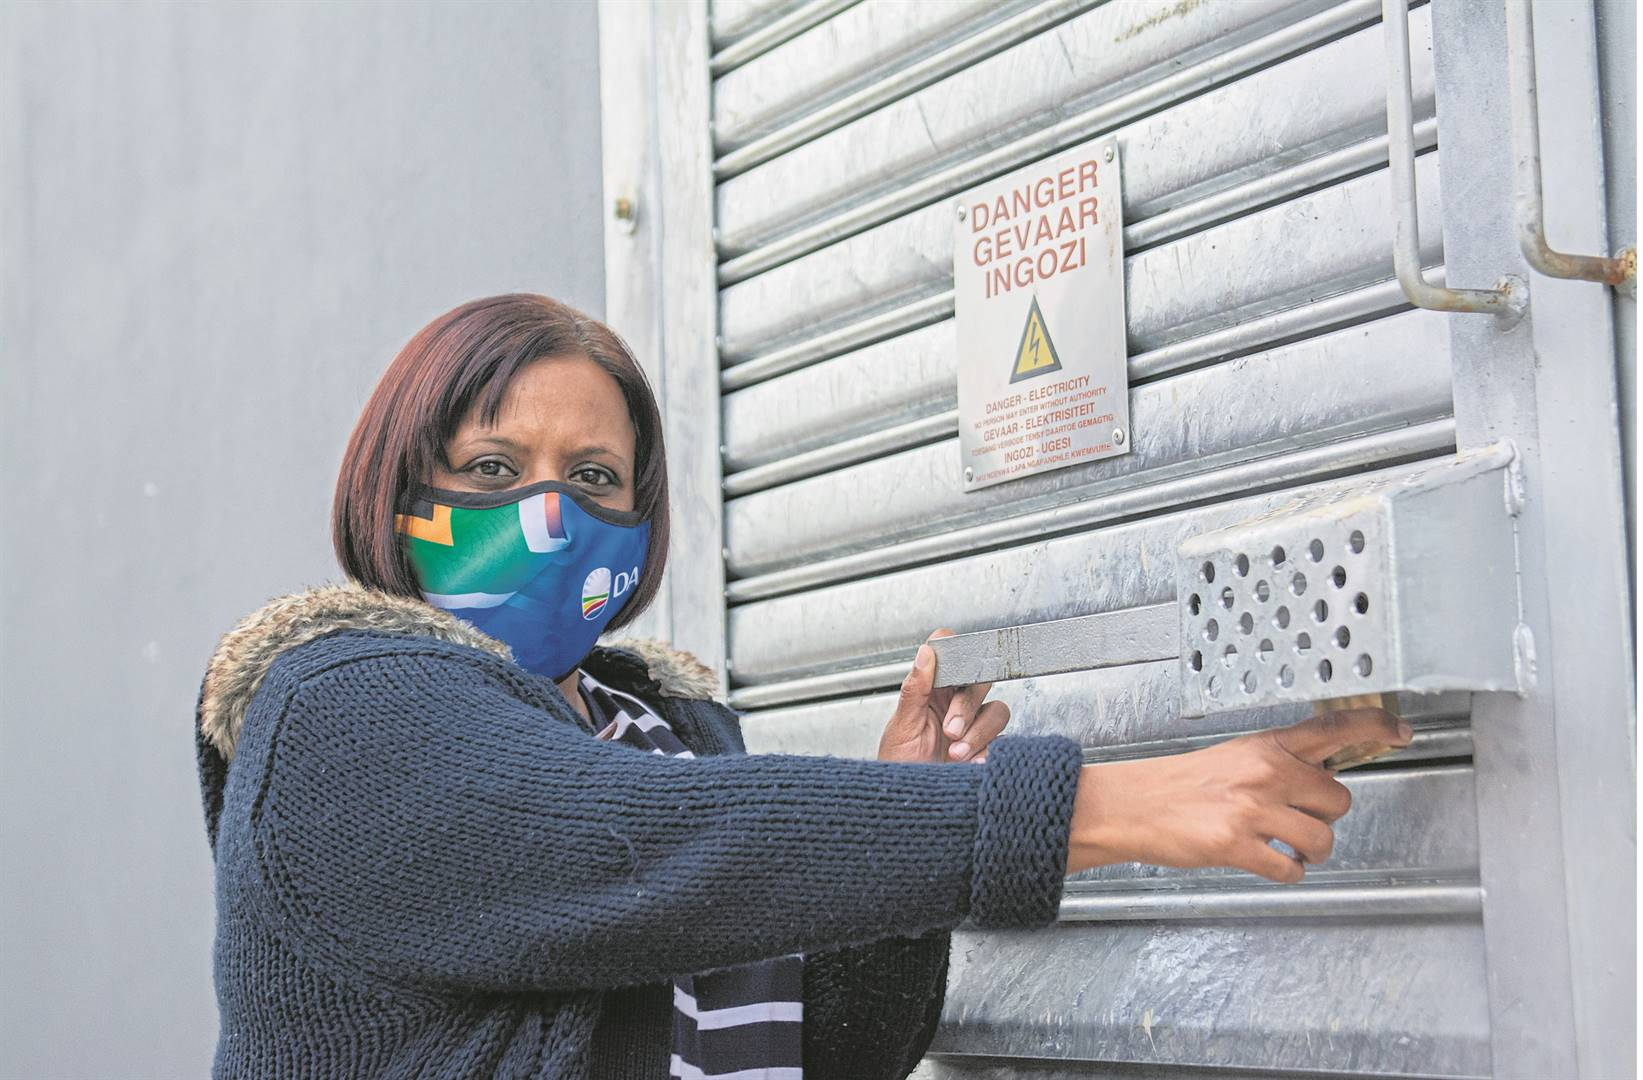 Ward 33 councillor Suraya Reddy at the Woodburn substation, where a local business has replaced missing locks to secure the equipment inside.